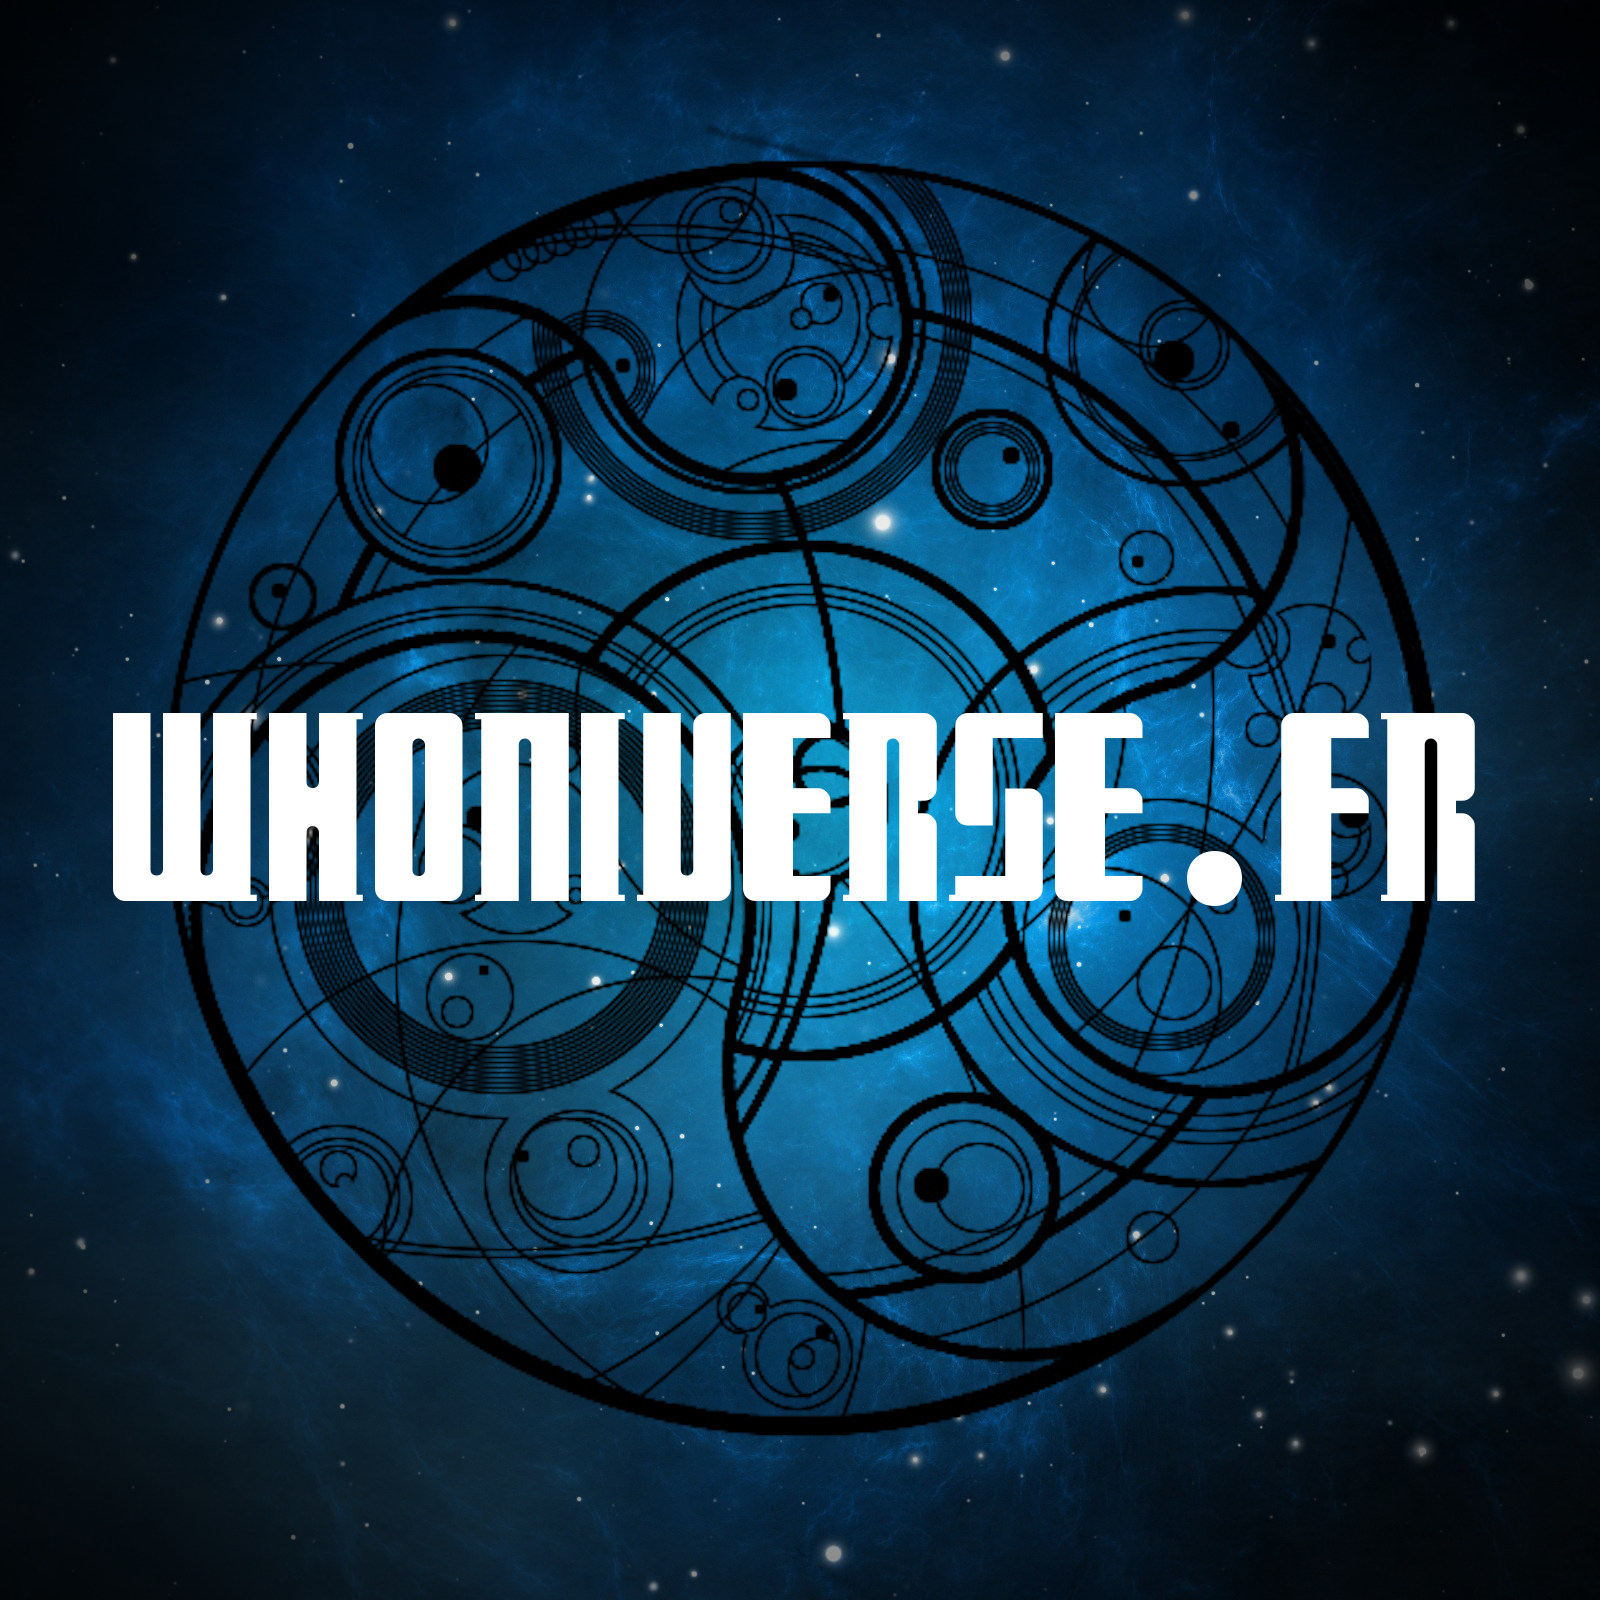 Whoniverse.fr